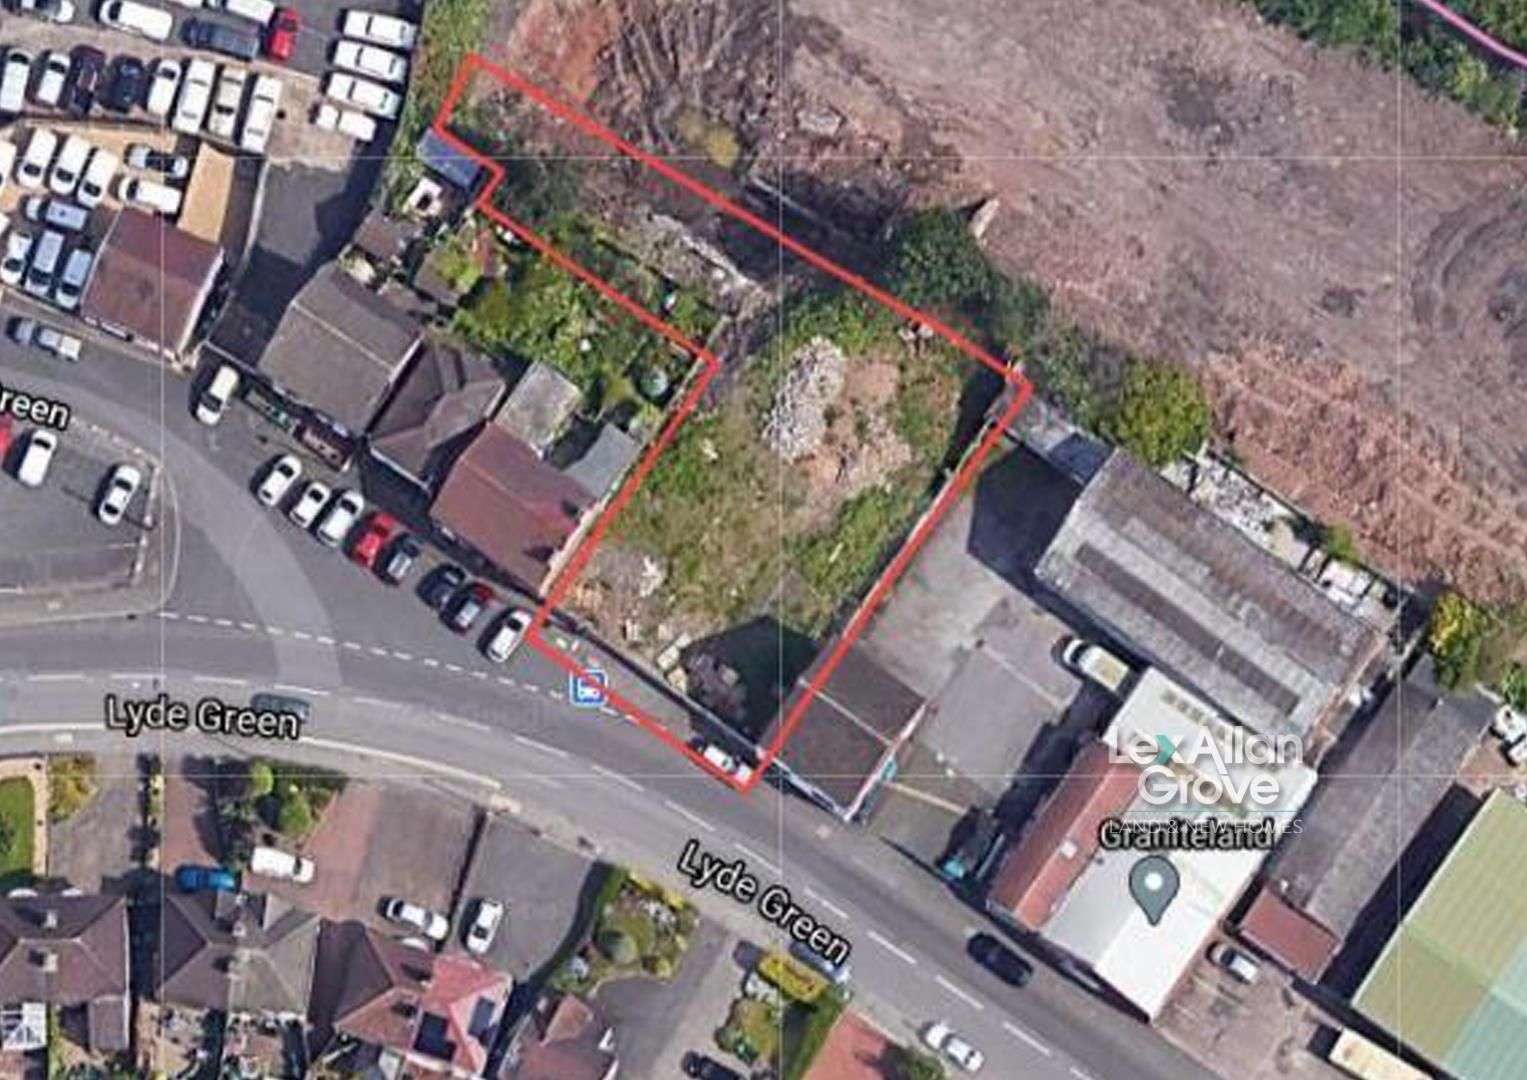 Land for sale, B63